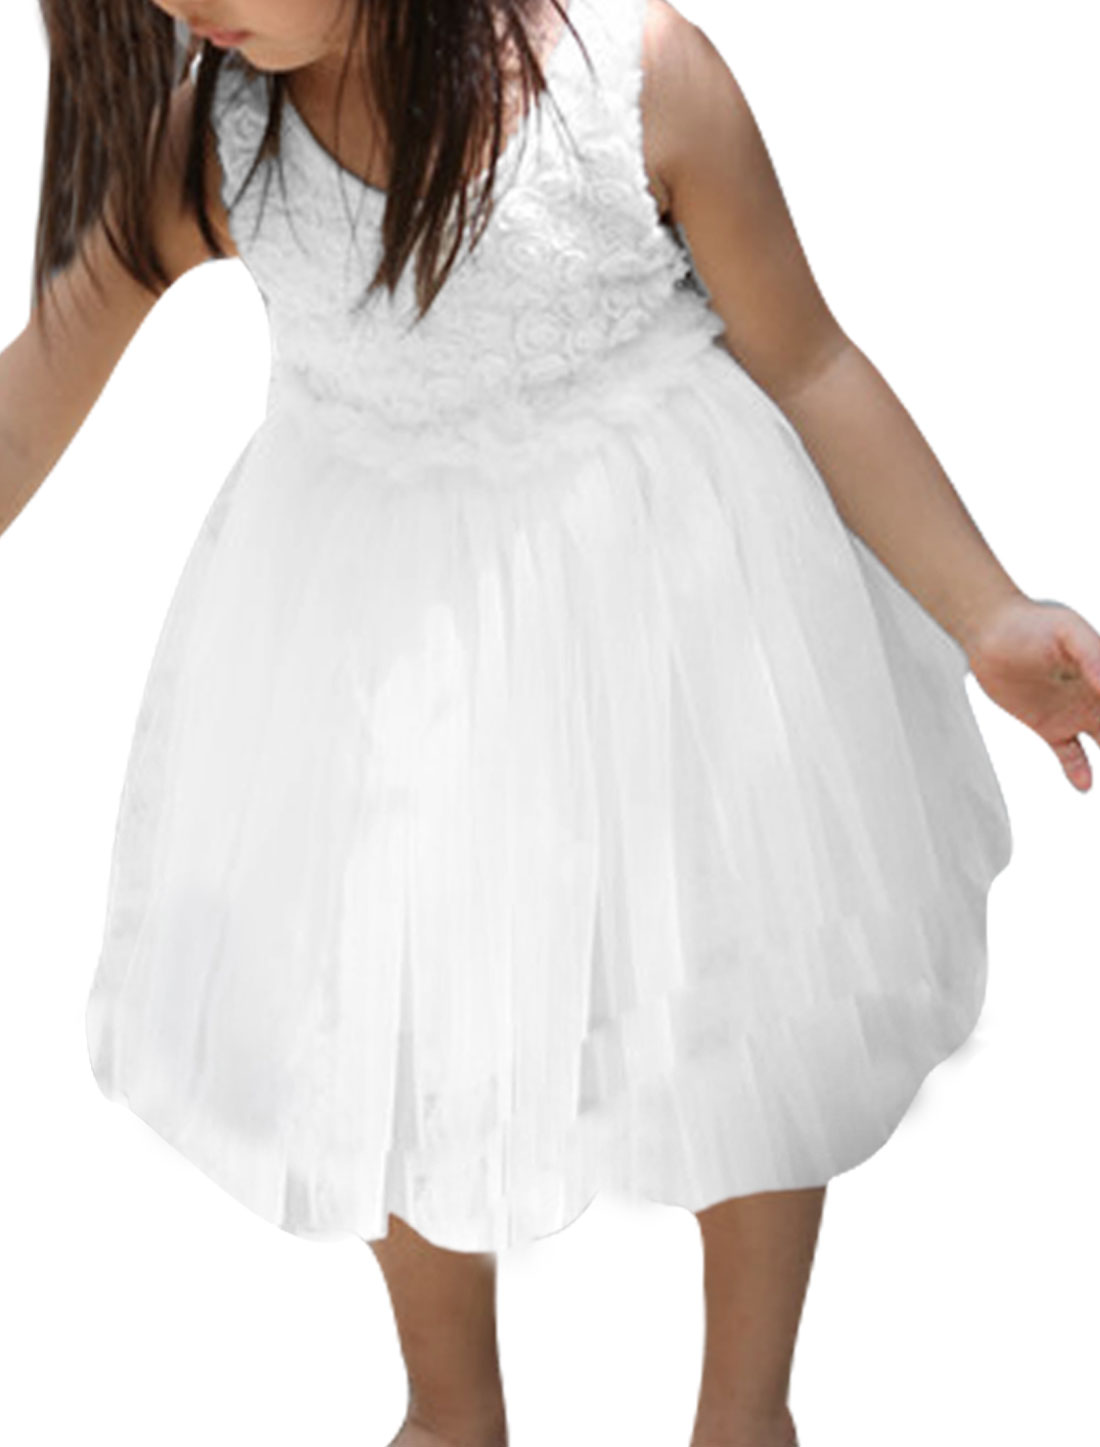 Girl Sleeveless Floral Design Mesh Panel Pleated Dress White 2T